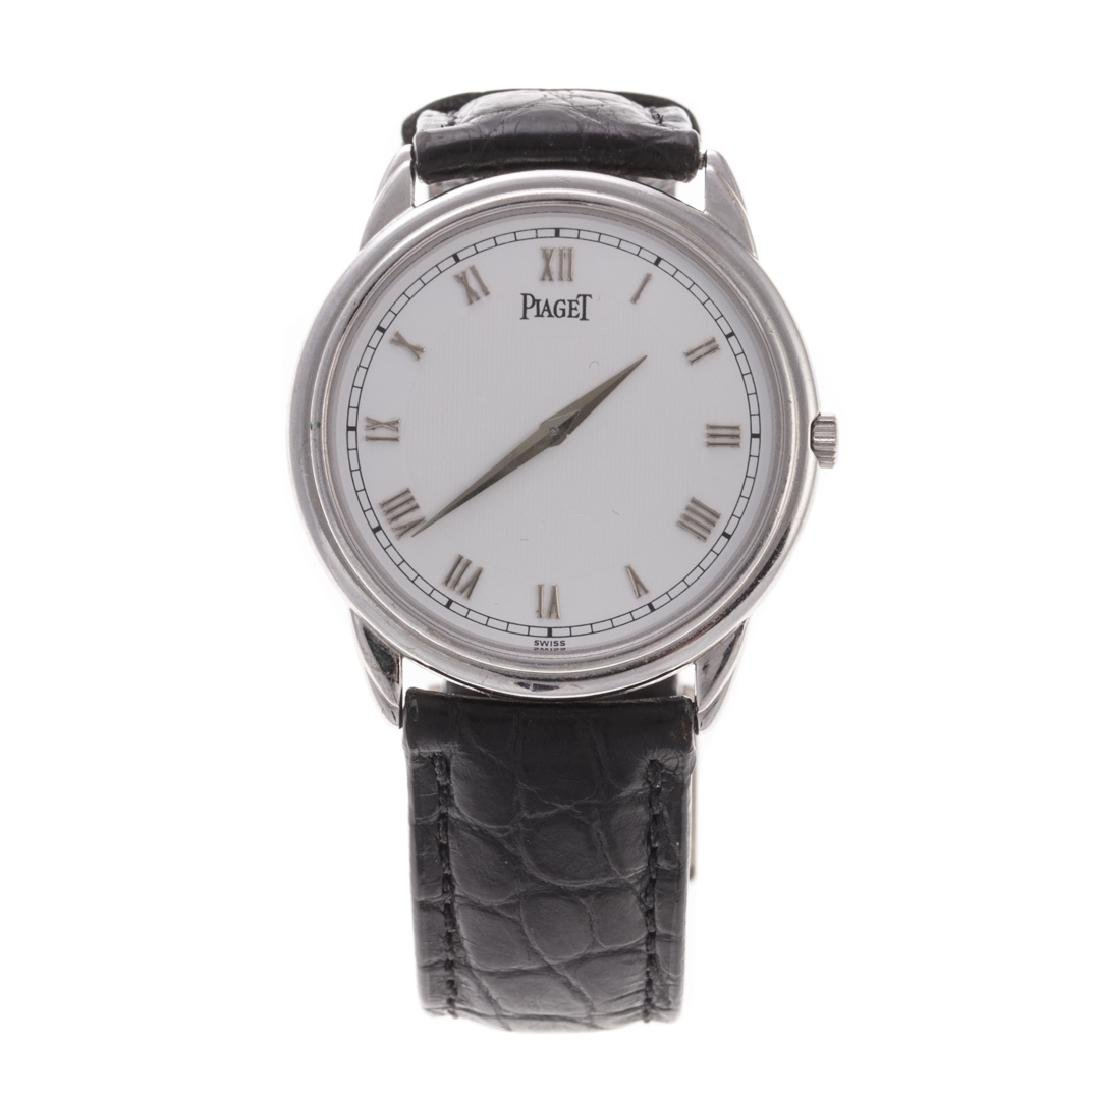 A Gent's White Gold Piaget Wrist Watch